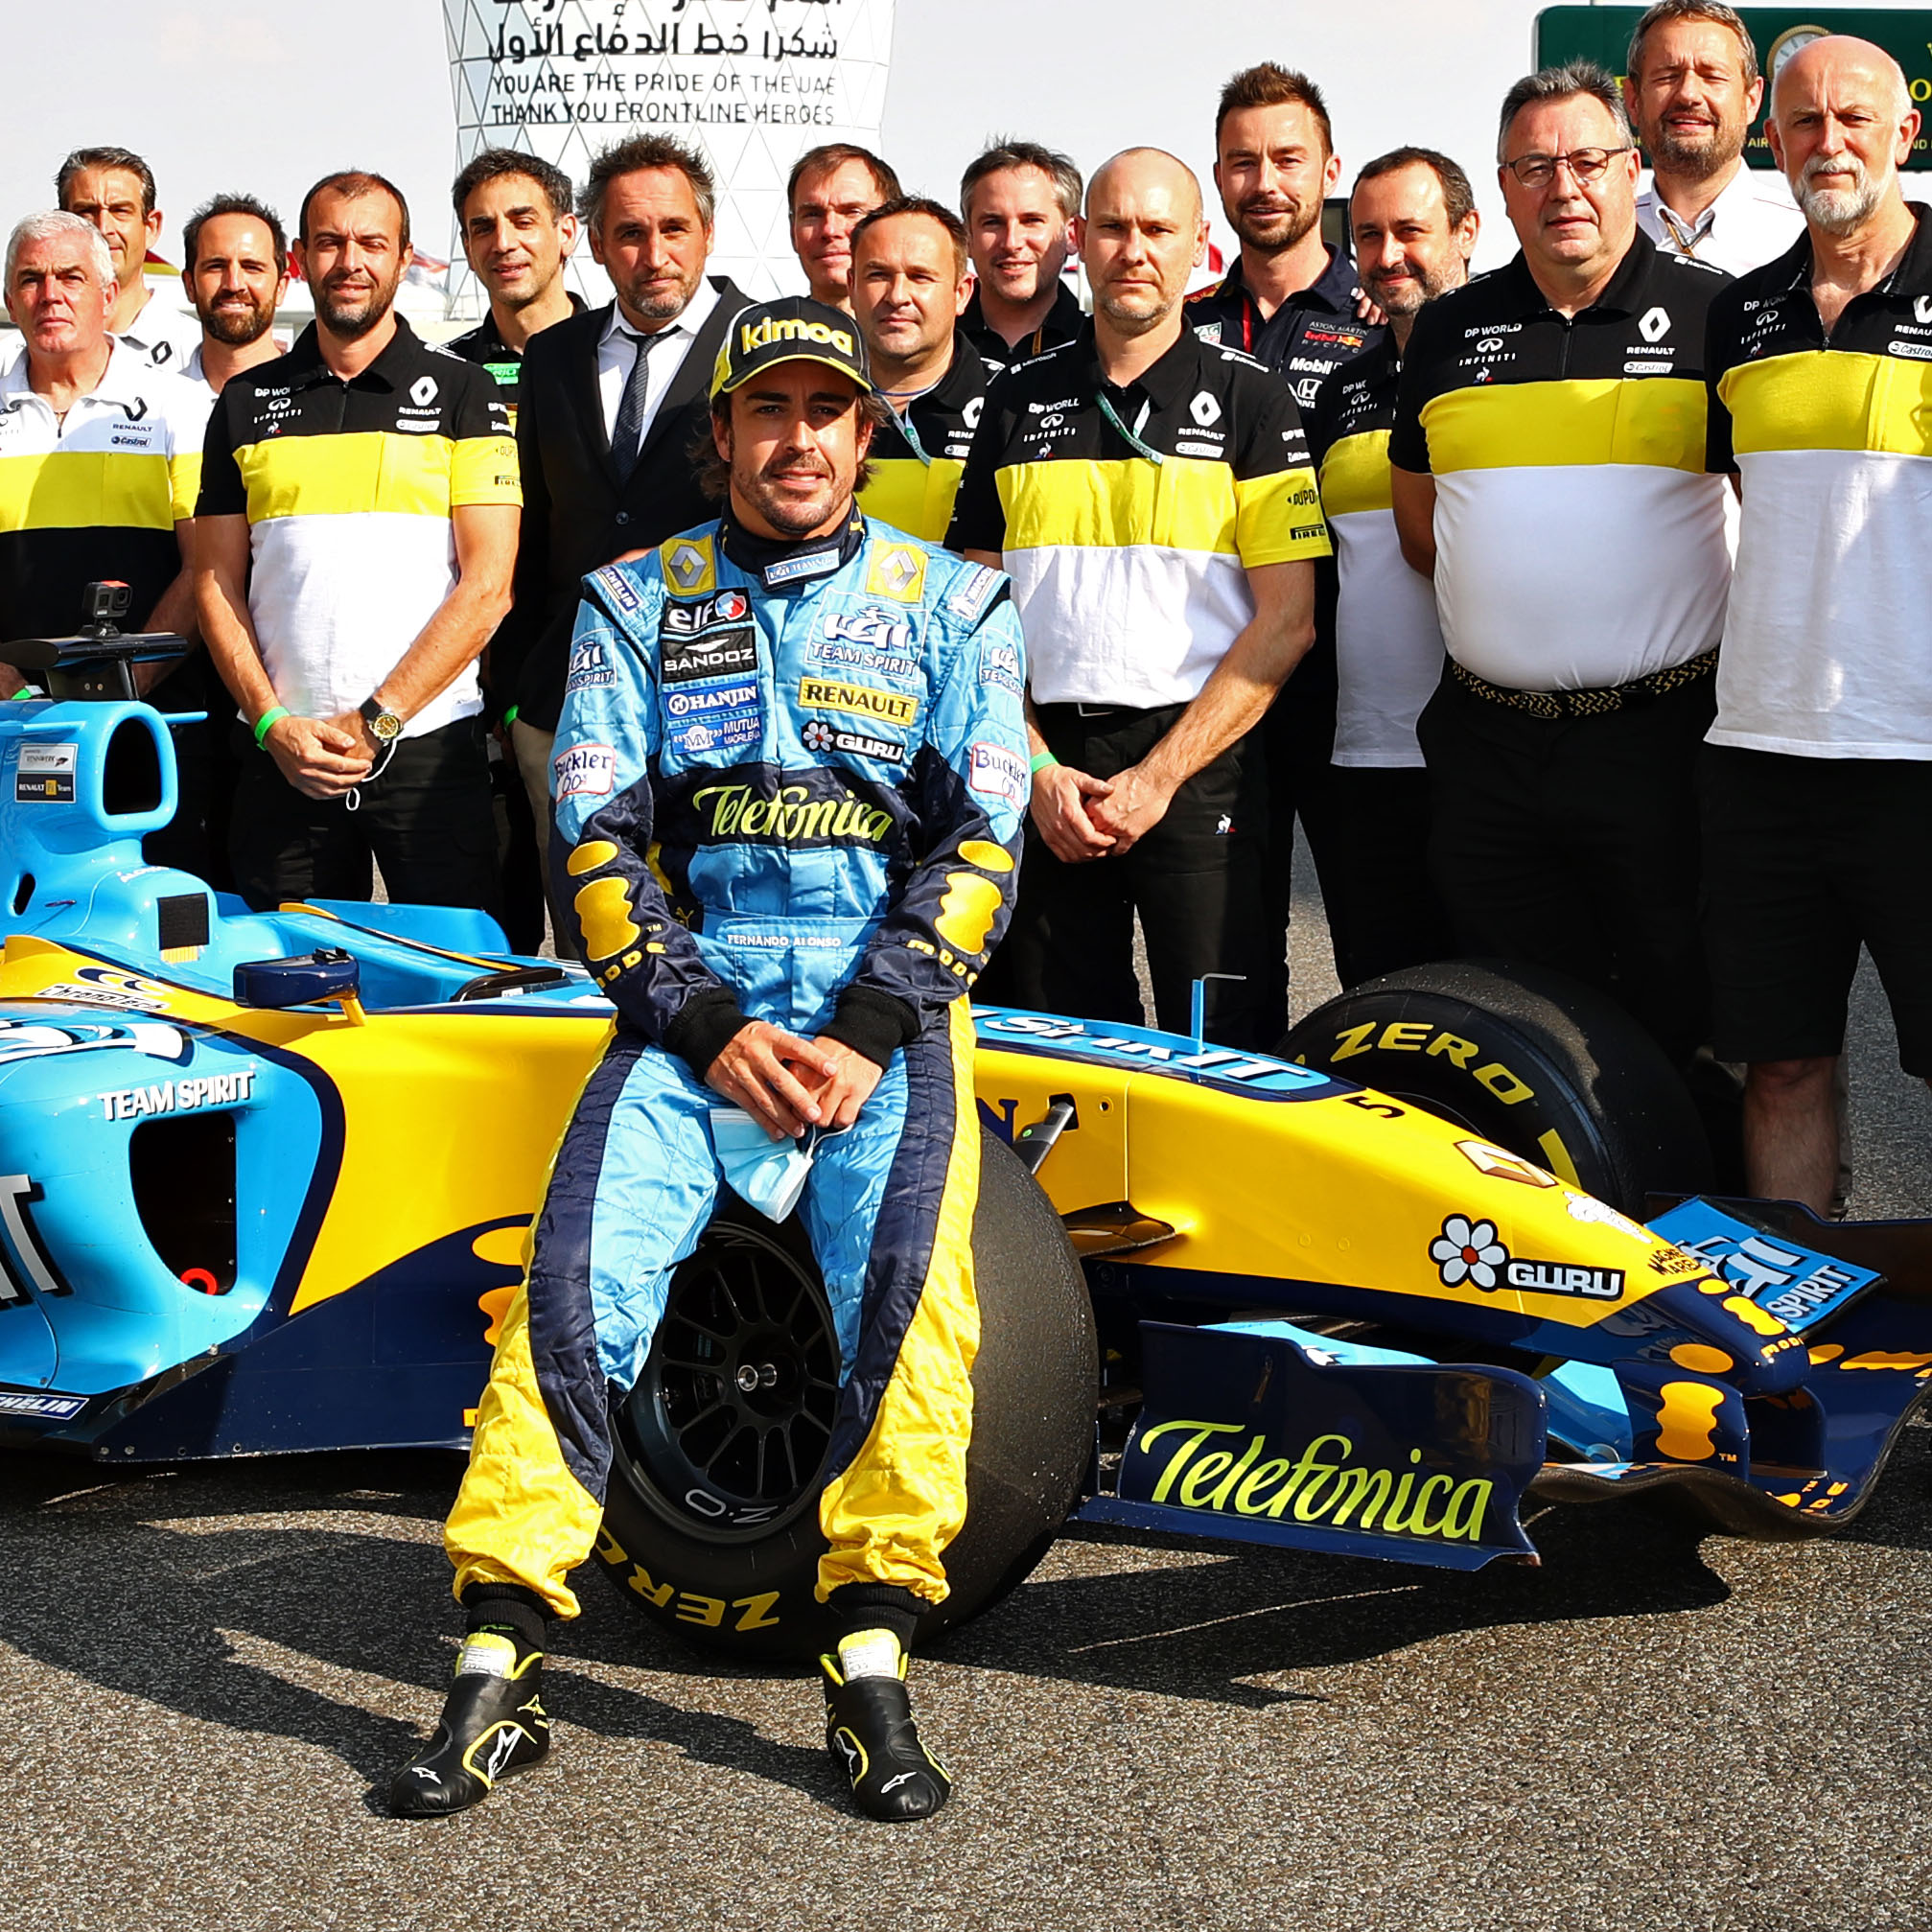 Fernando-Alonso-on-his-F1-title-winning-renault-R25-in-2020